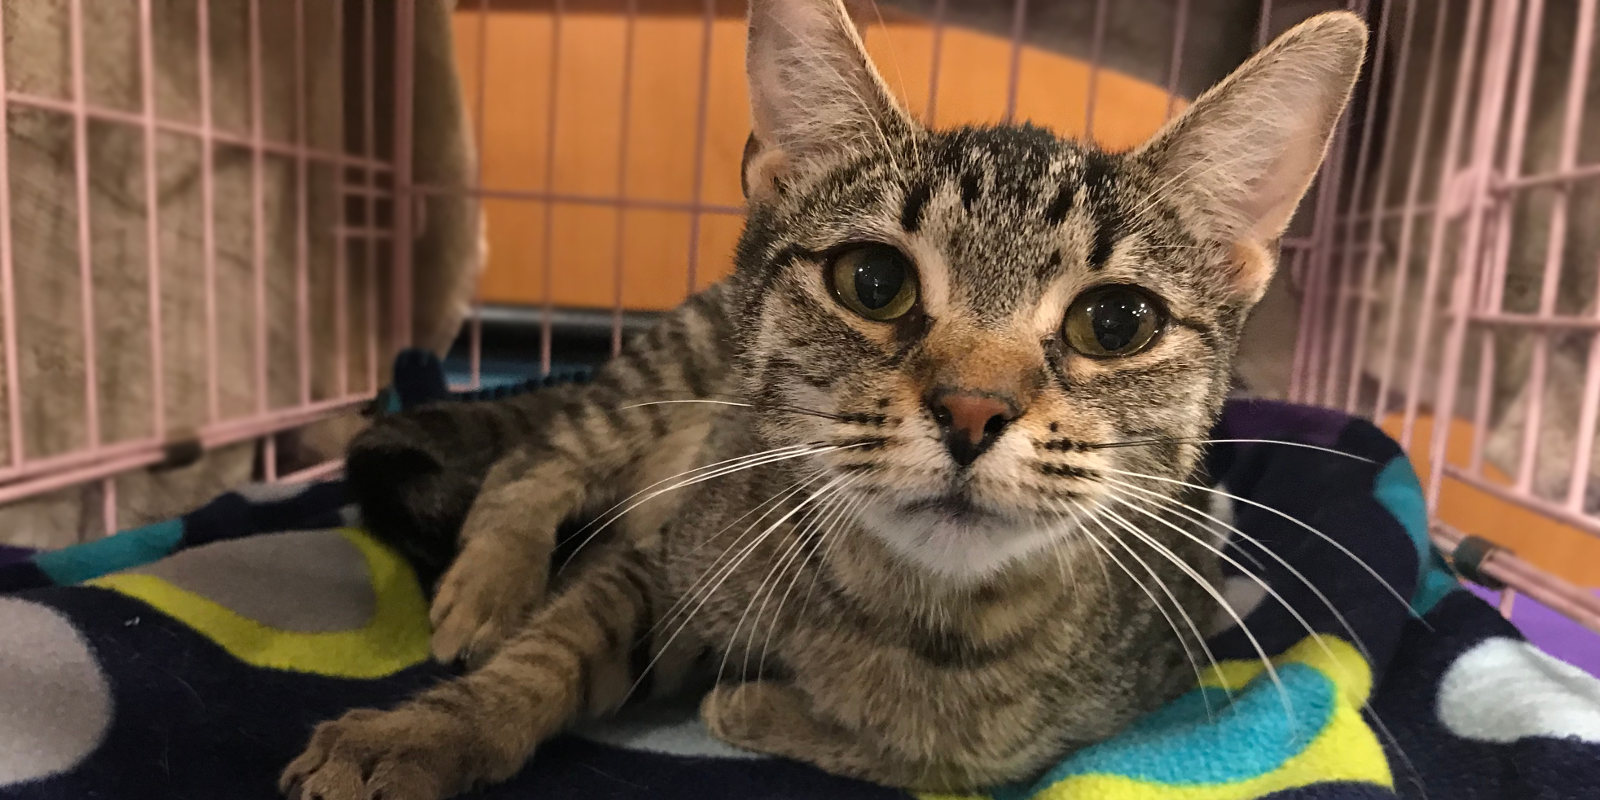 Marvelous, adoptable female tabby cat